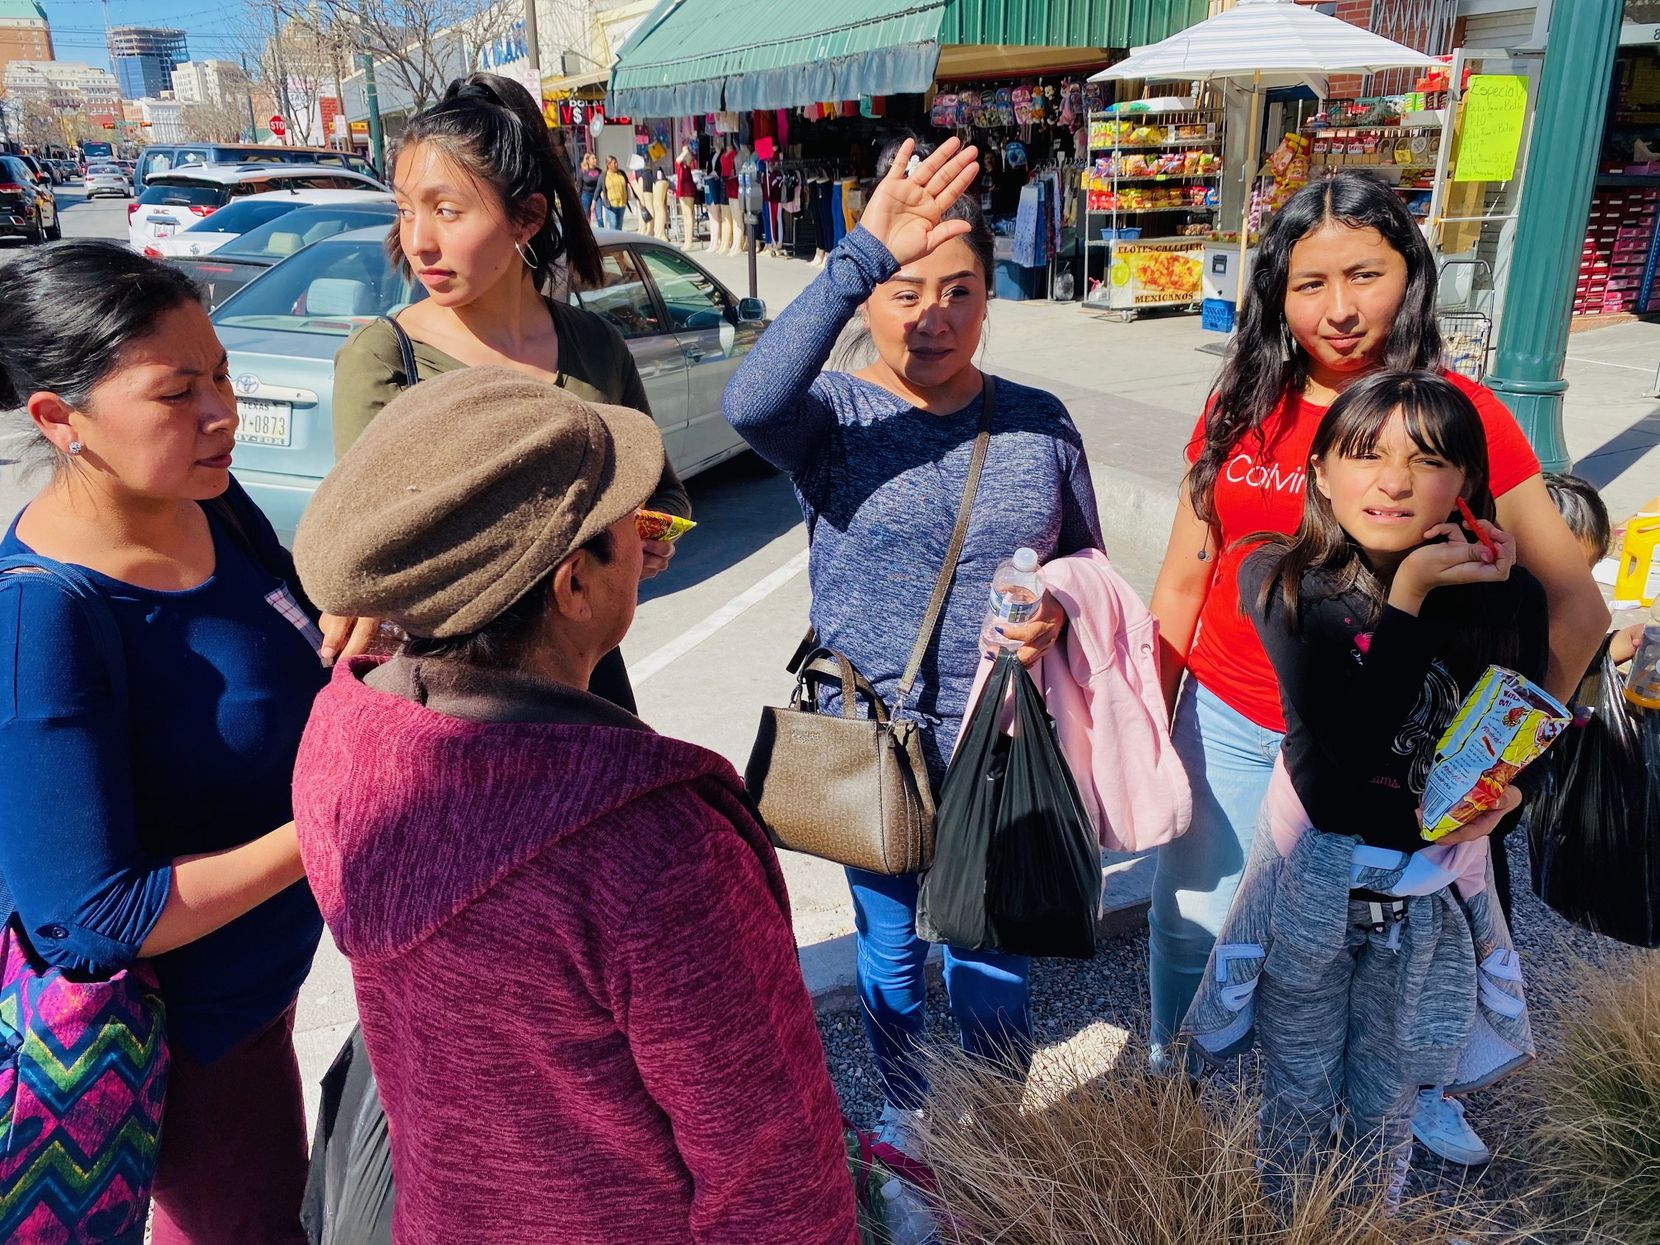 The Lerma family drove about 35 miles to meet grandmother Blanca Trejo and an aunt and cousin. They are trying to adjust to the new normal of social distancing.